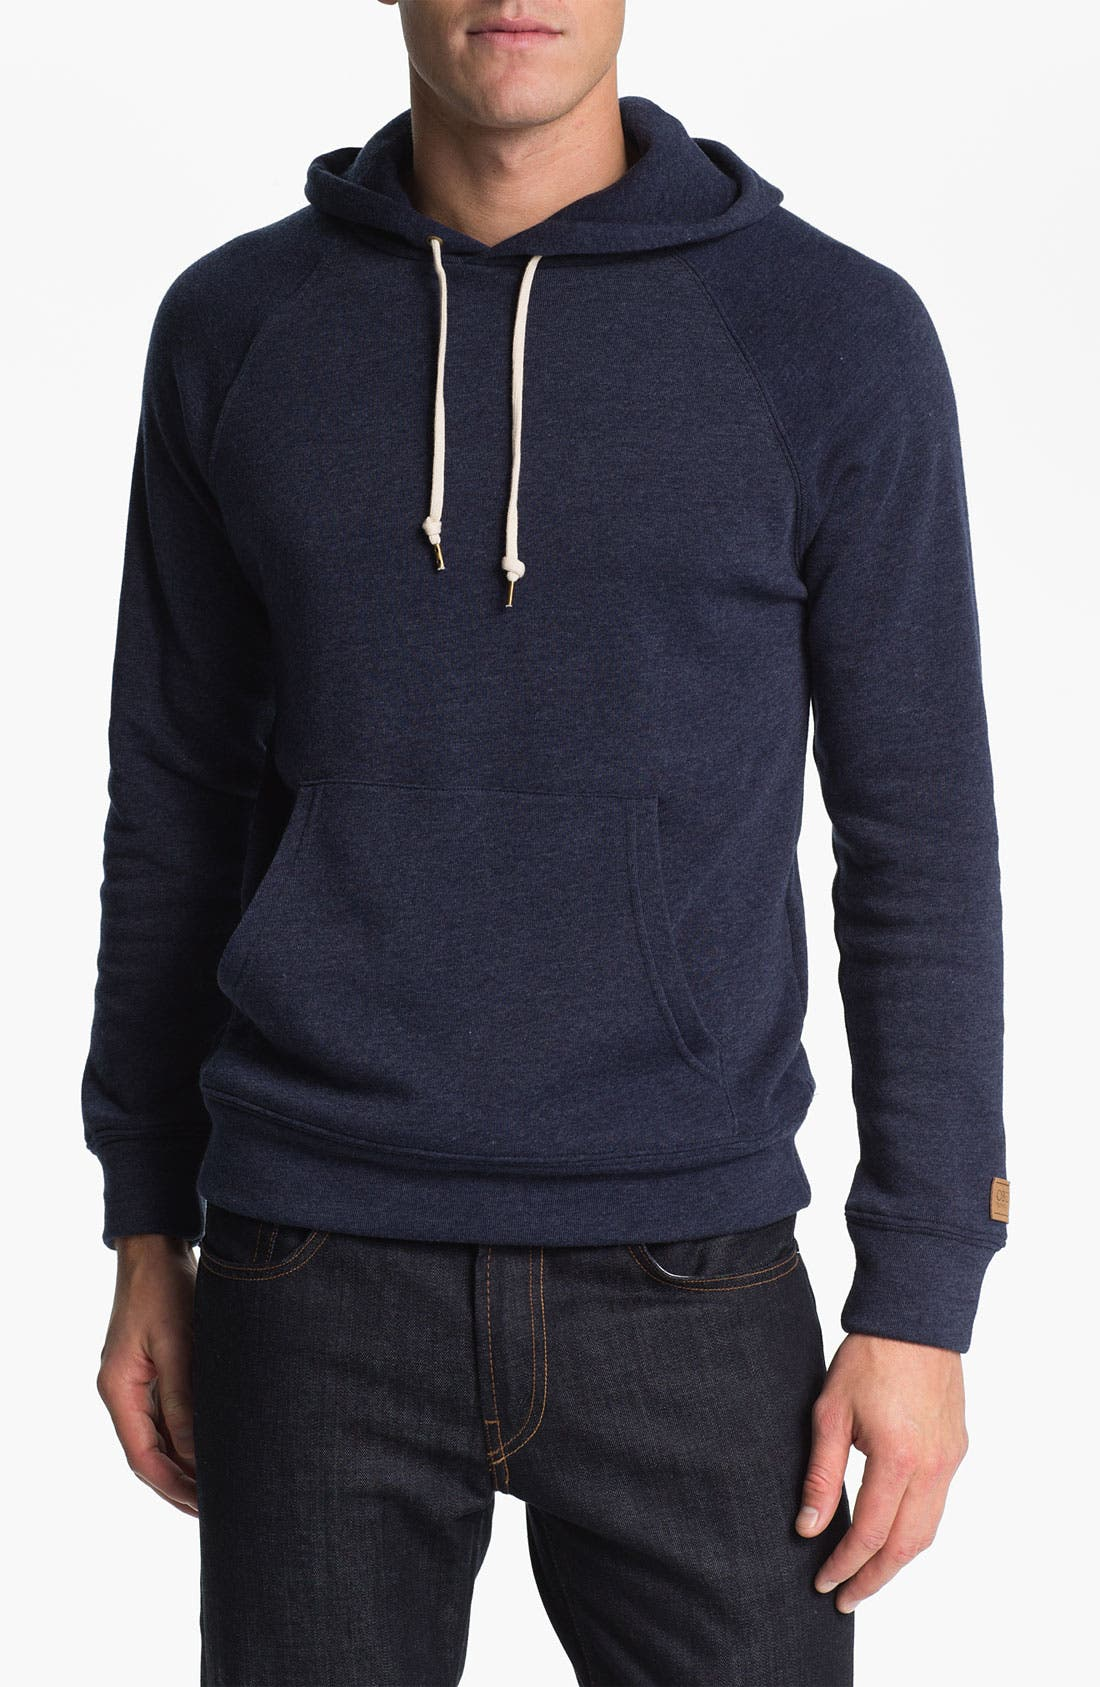 Main Image - Obey 'Lofty Creature Comforts' Hooded Sweatshirt